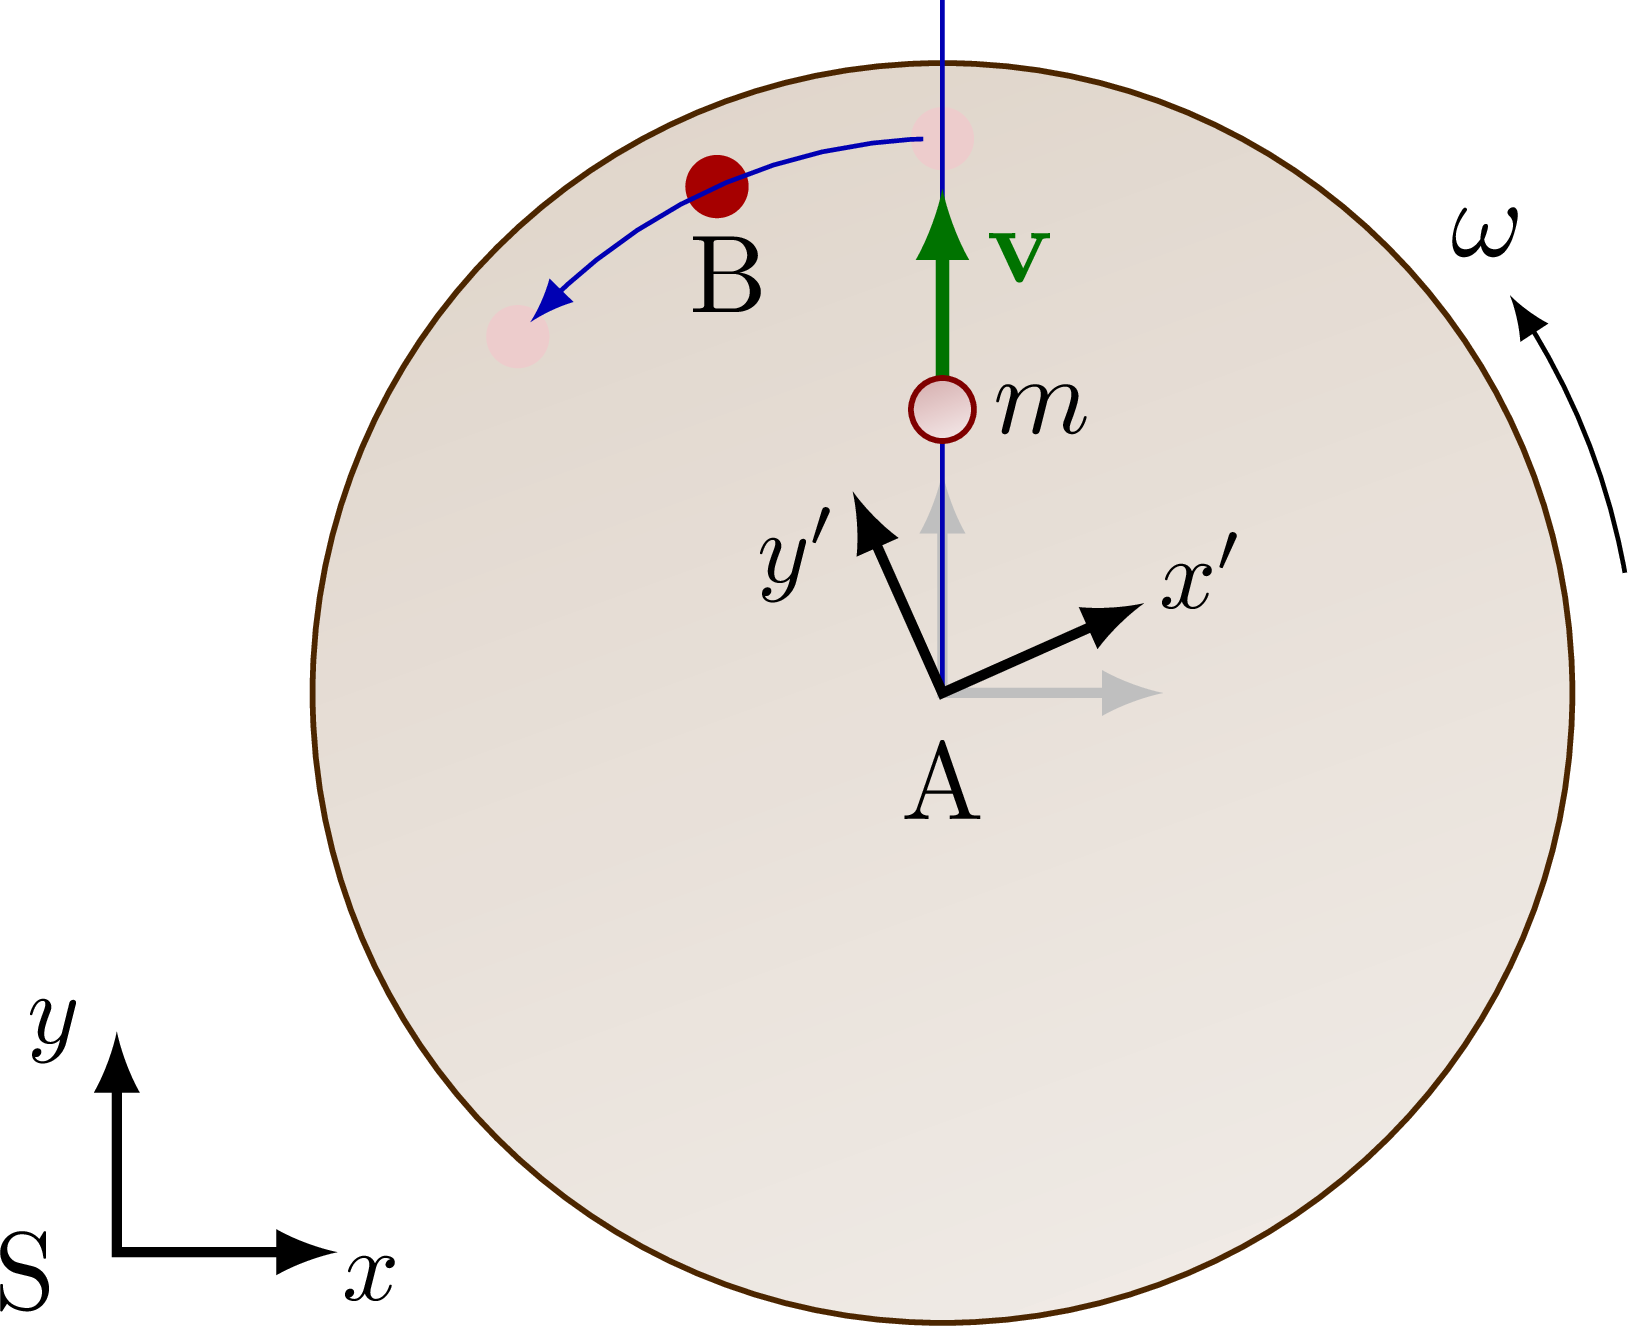 reference_frame_rotational-005.png